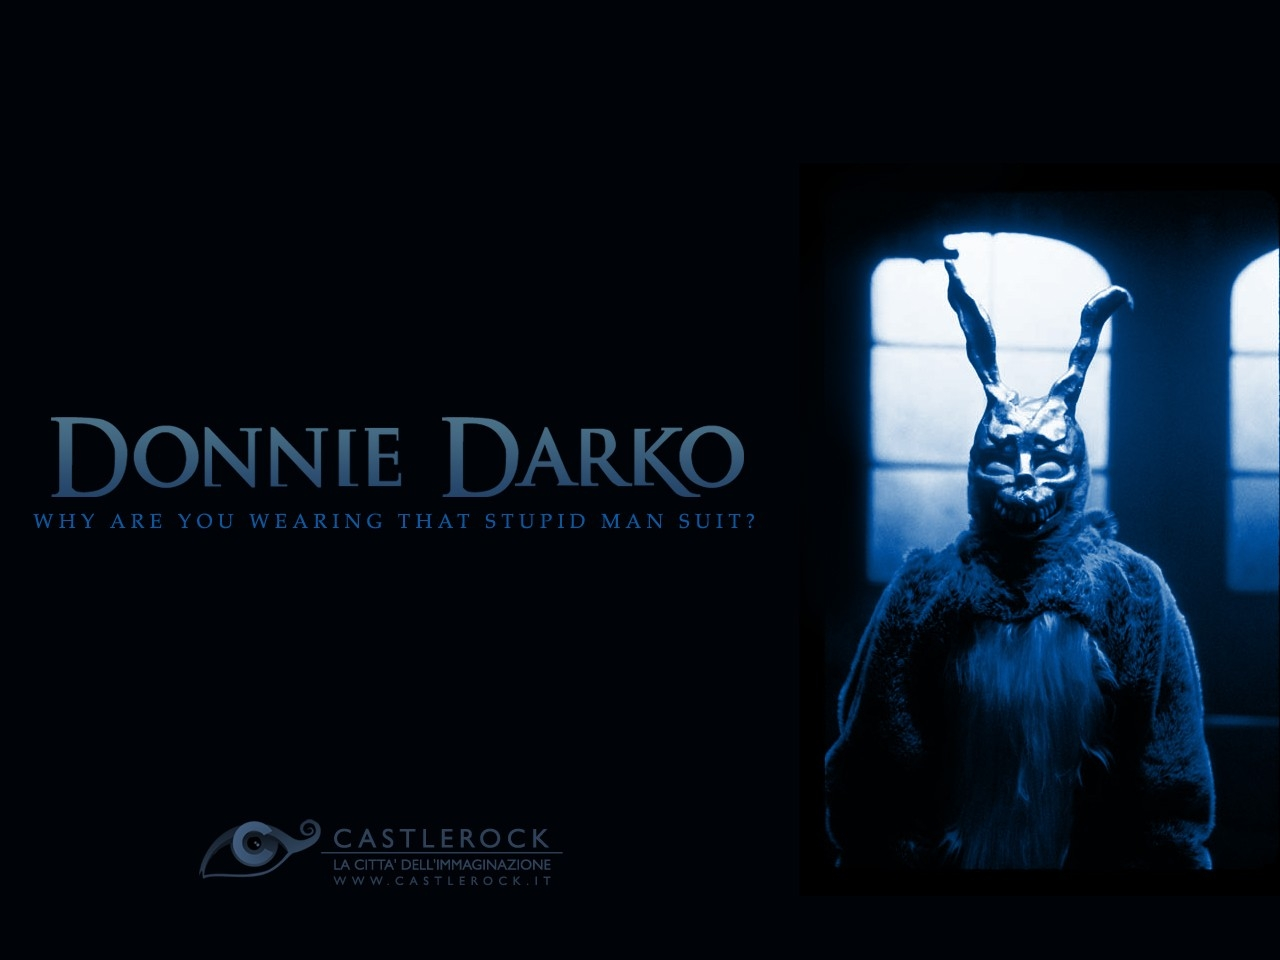 a comprehensive analysis of donnie darko a film directed by richard kelly Immediately download the donnie darko summary director richard kelly combines vulgar comedy and donnie darko, a film by richard kelly is about a.